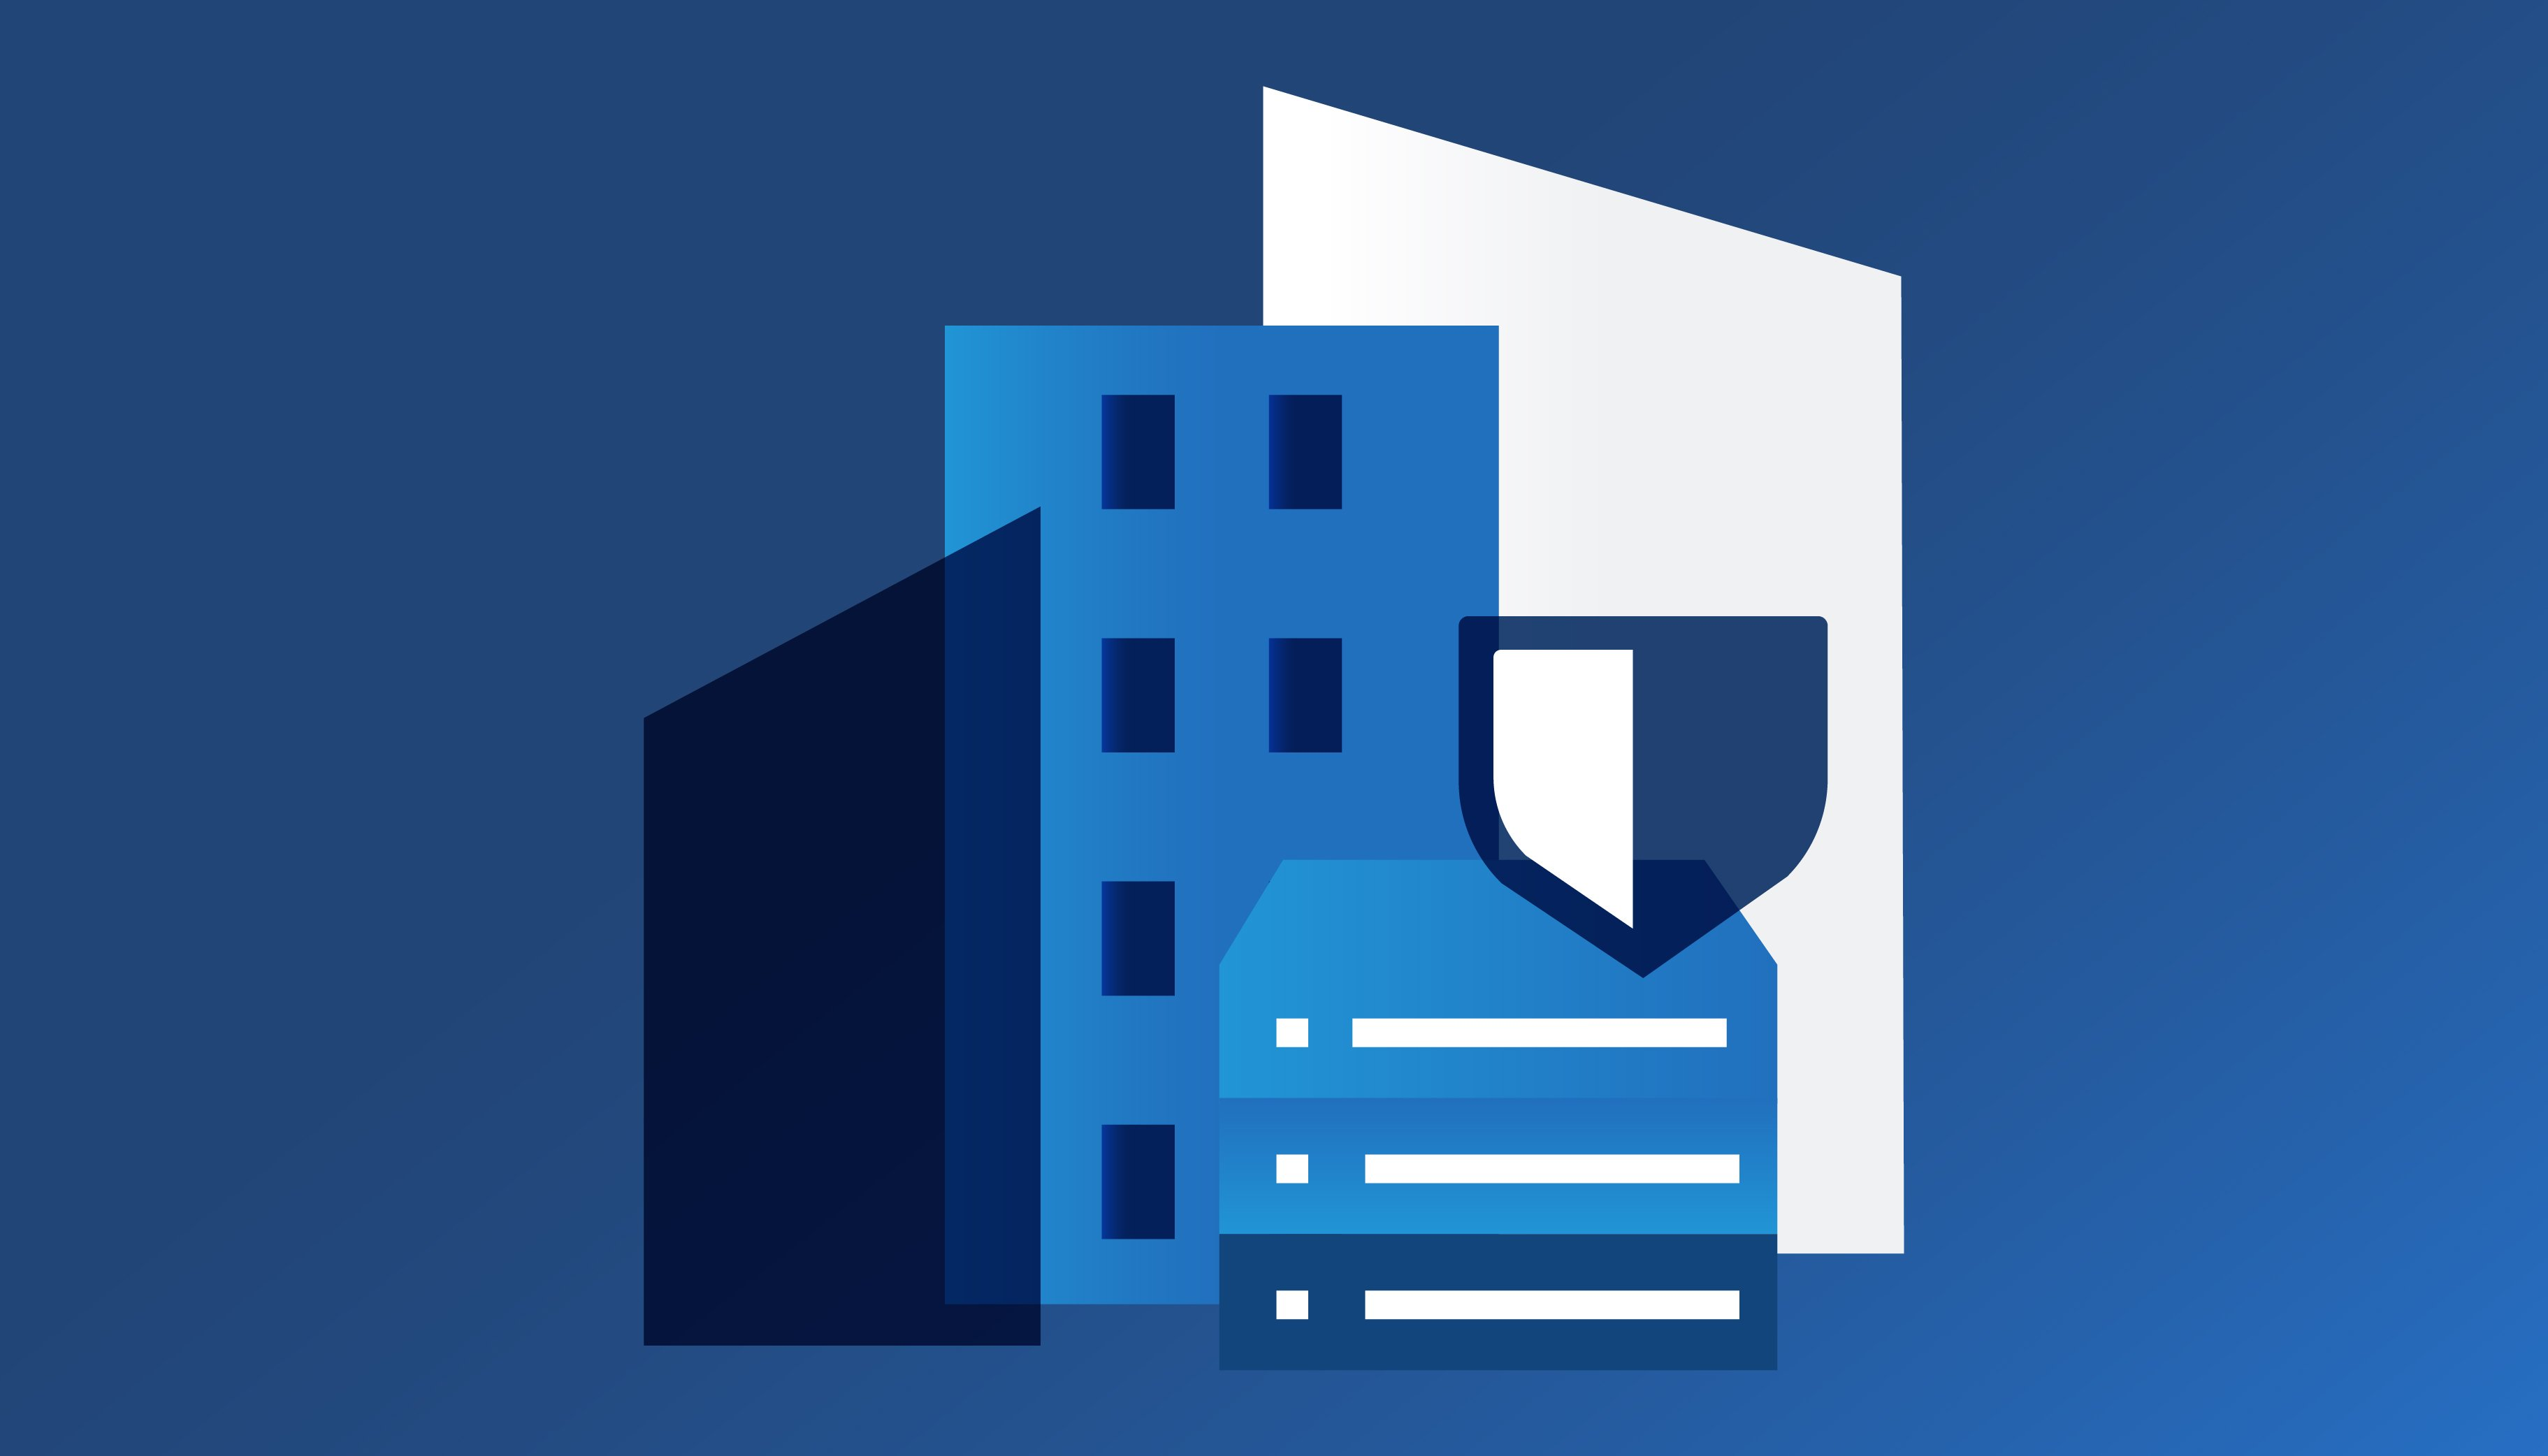 An illustrated server stack in front of blue and white buildings and a shield symbolizing data protection.